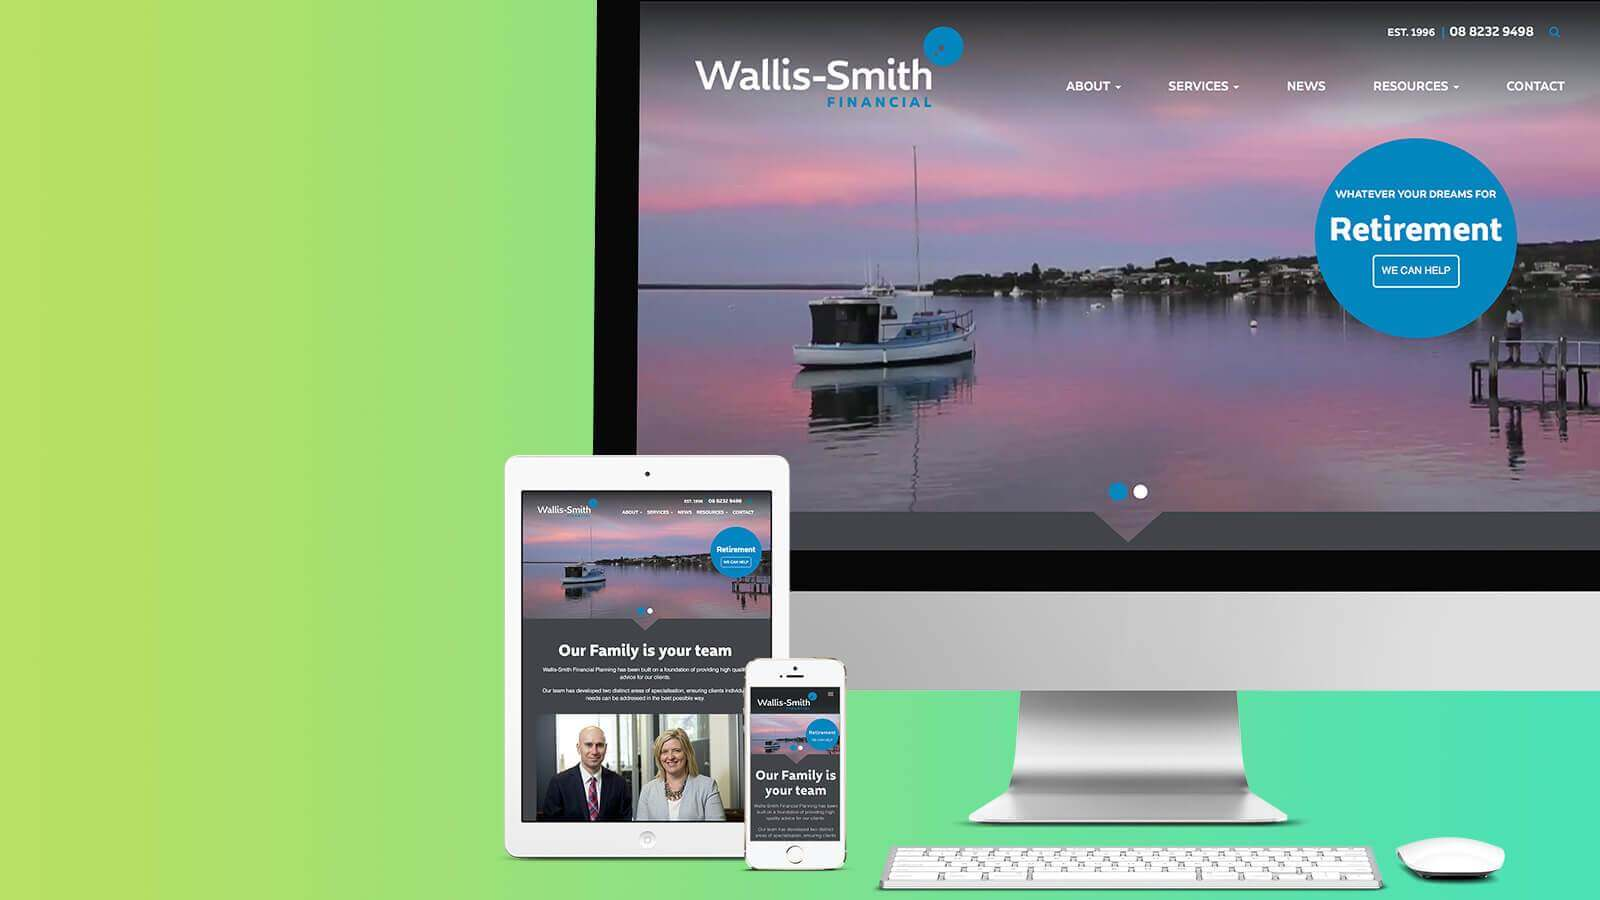 Wallis-Smith Website Development - Design, Branding & Strategy - Digital Agency